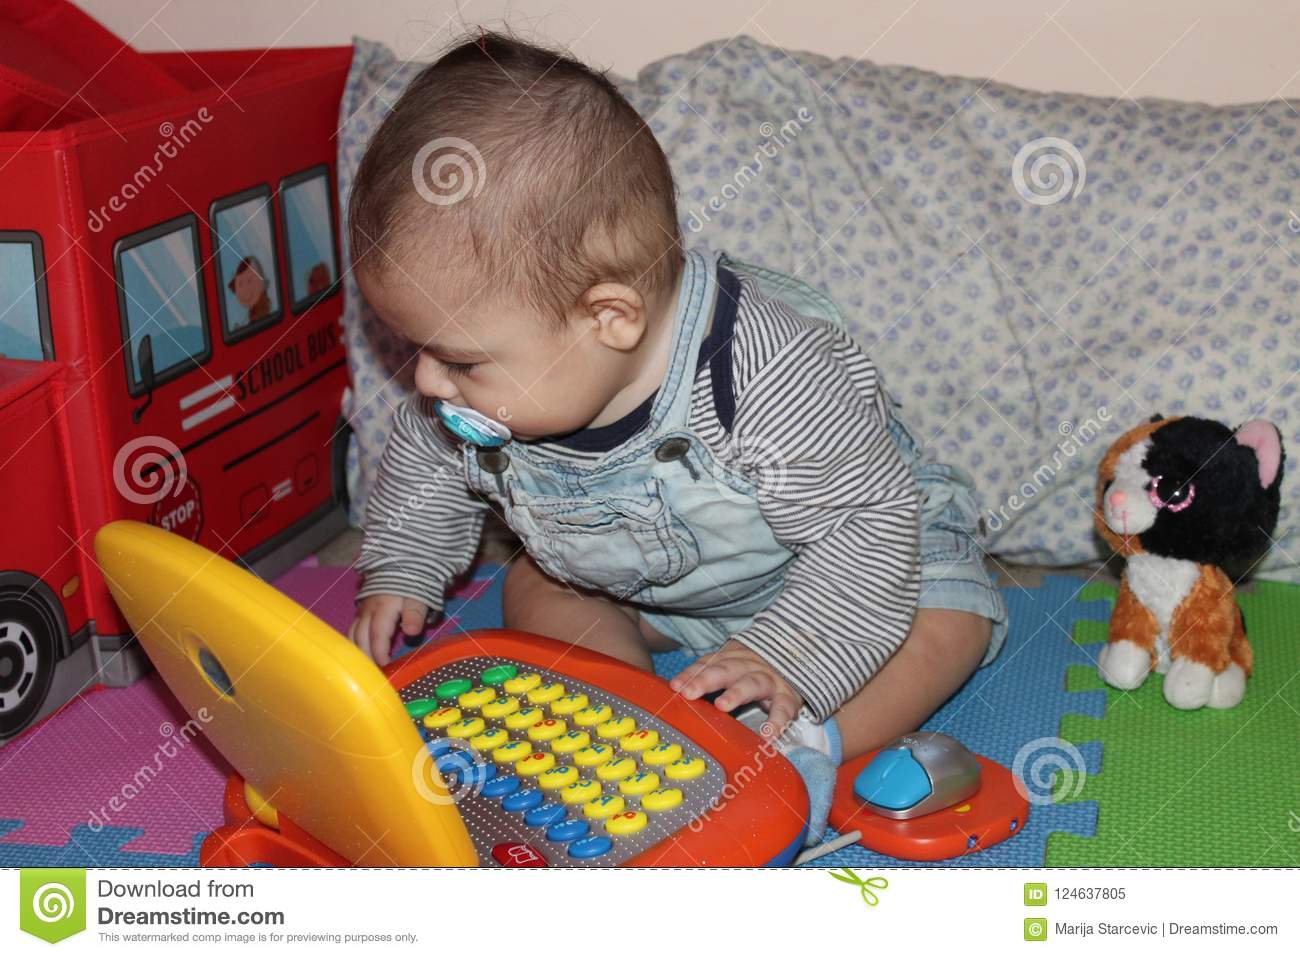 6 Months Old Baby Boy Playing With Toys Stock Image Image Of Cute